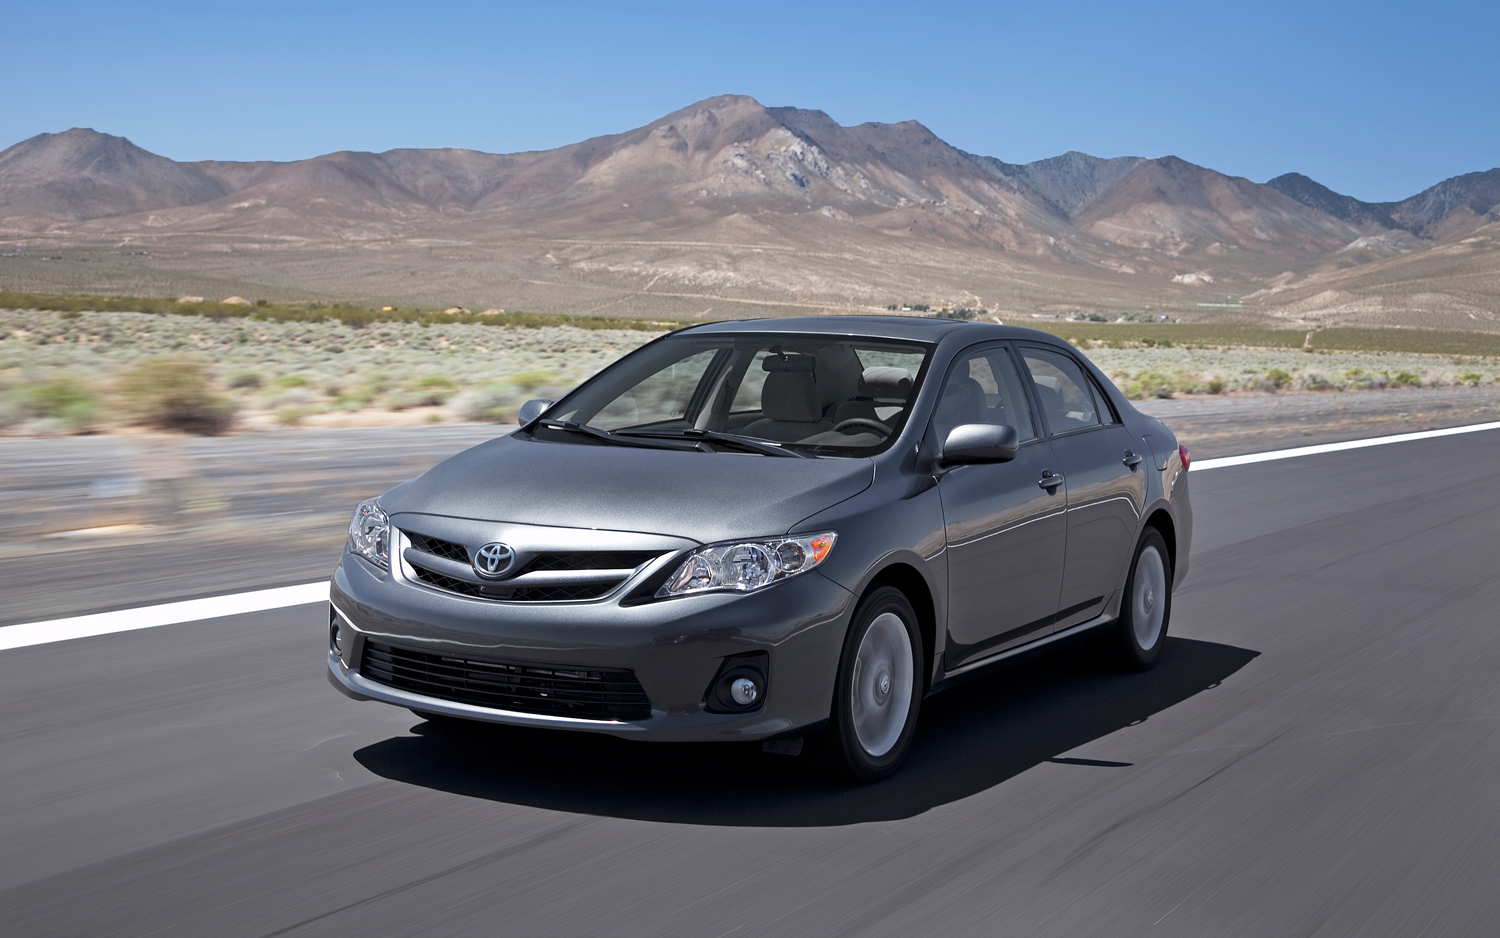 Silver 2011 Used Toyota Corolla in desert with mountains in back